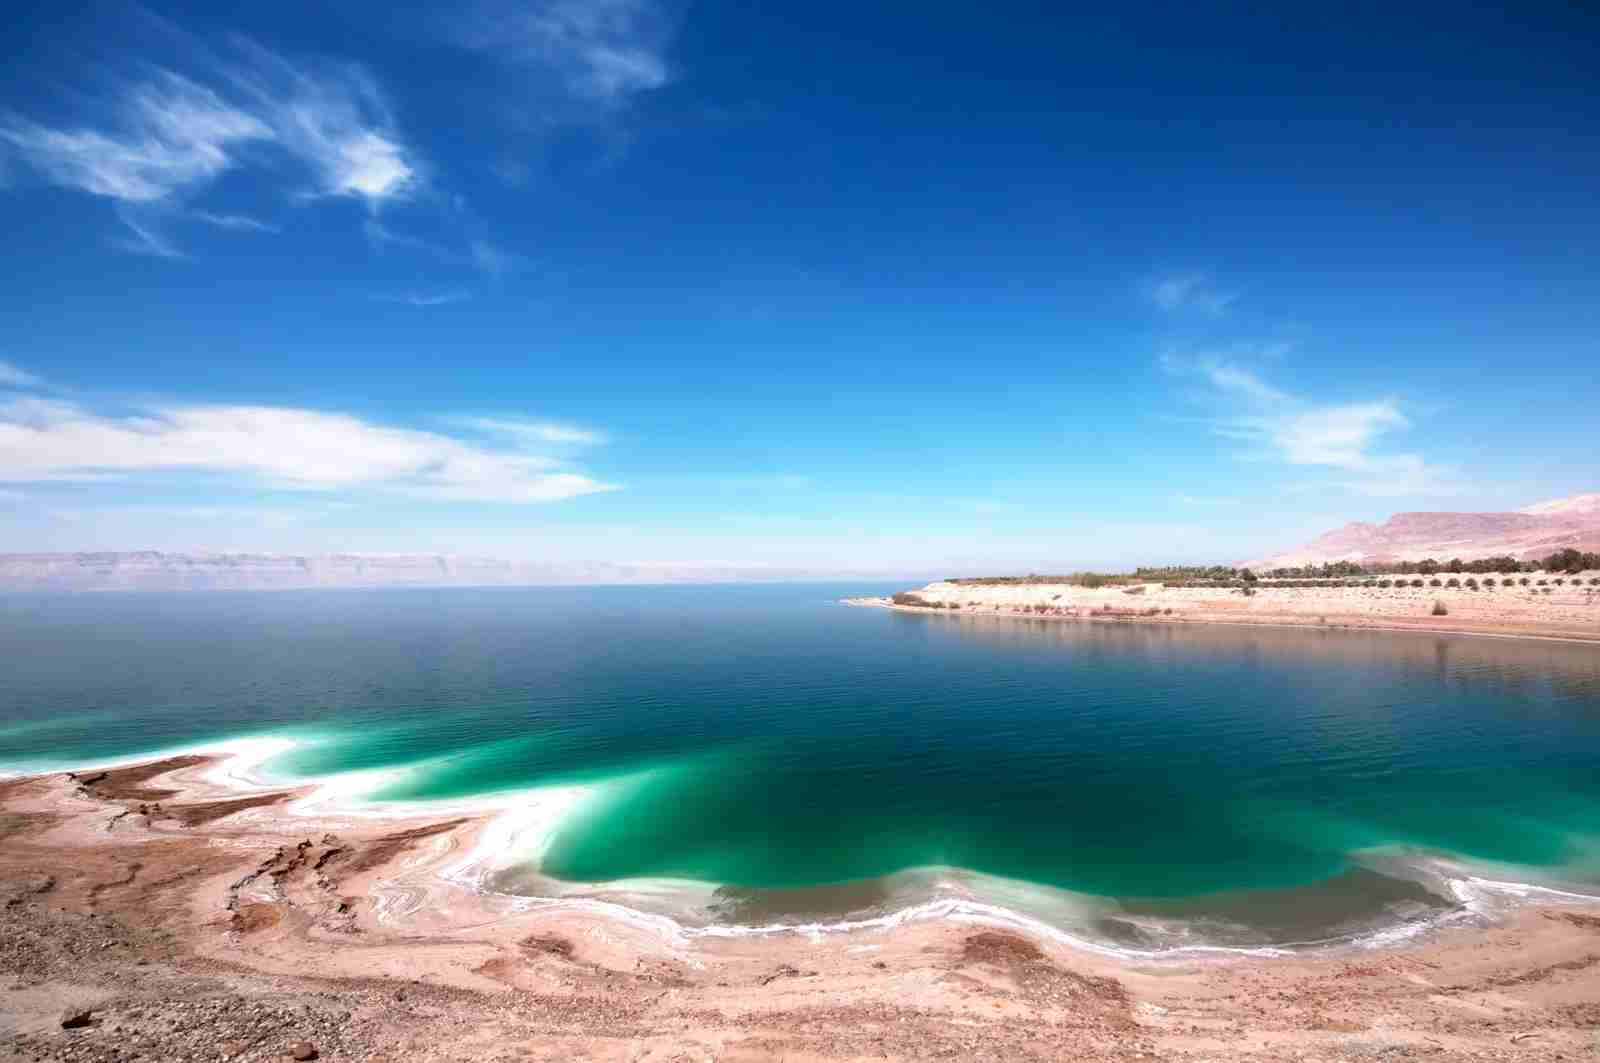 The Dead Sea on a clear day. (Photo by Aeduard / Getty Images)